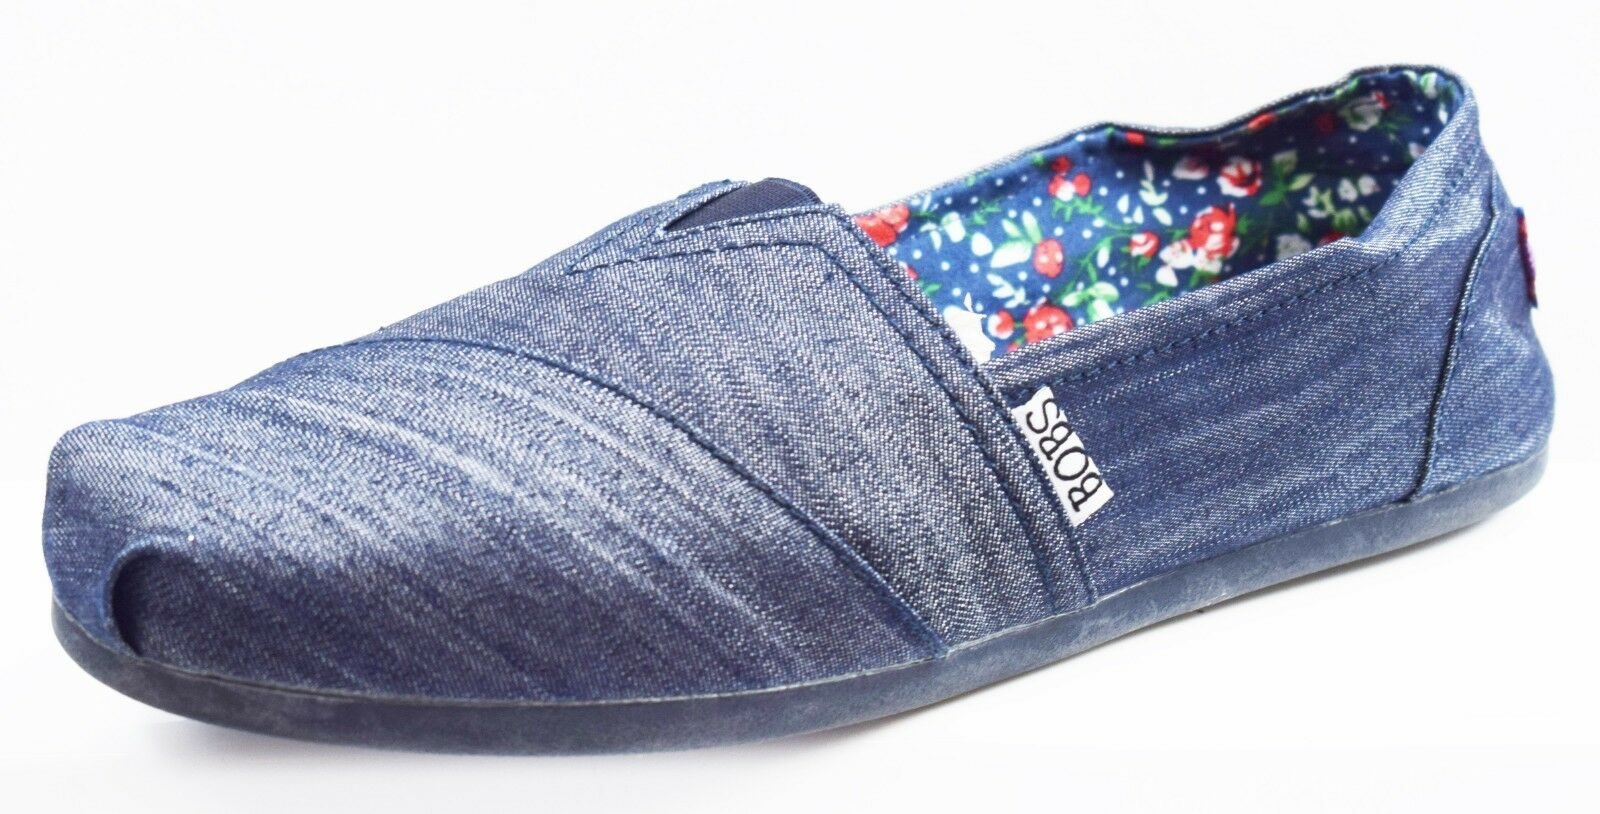 SKECHERS BOBS PLUSH LADIES  SHOES BRAND NEW SIZE UK 5 (AT13)